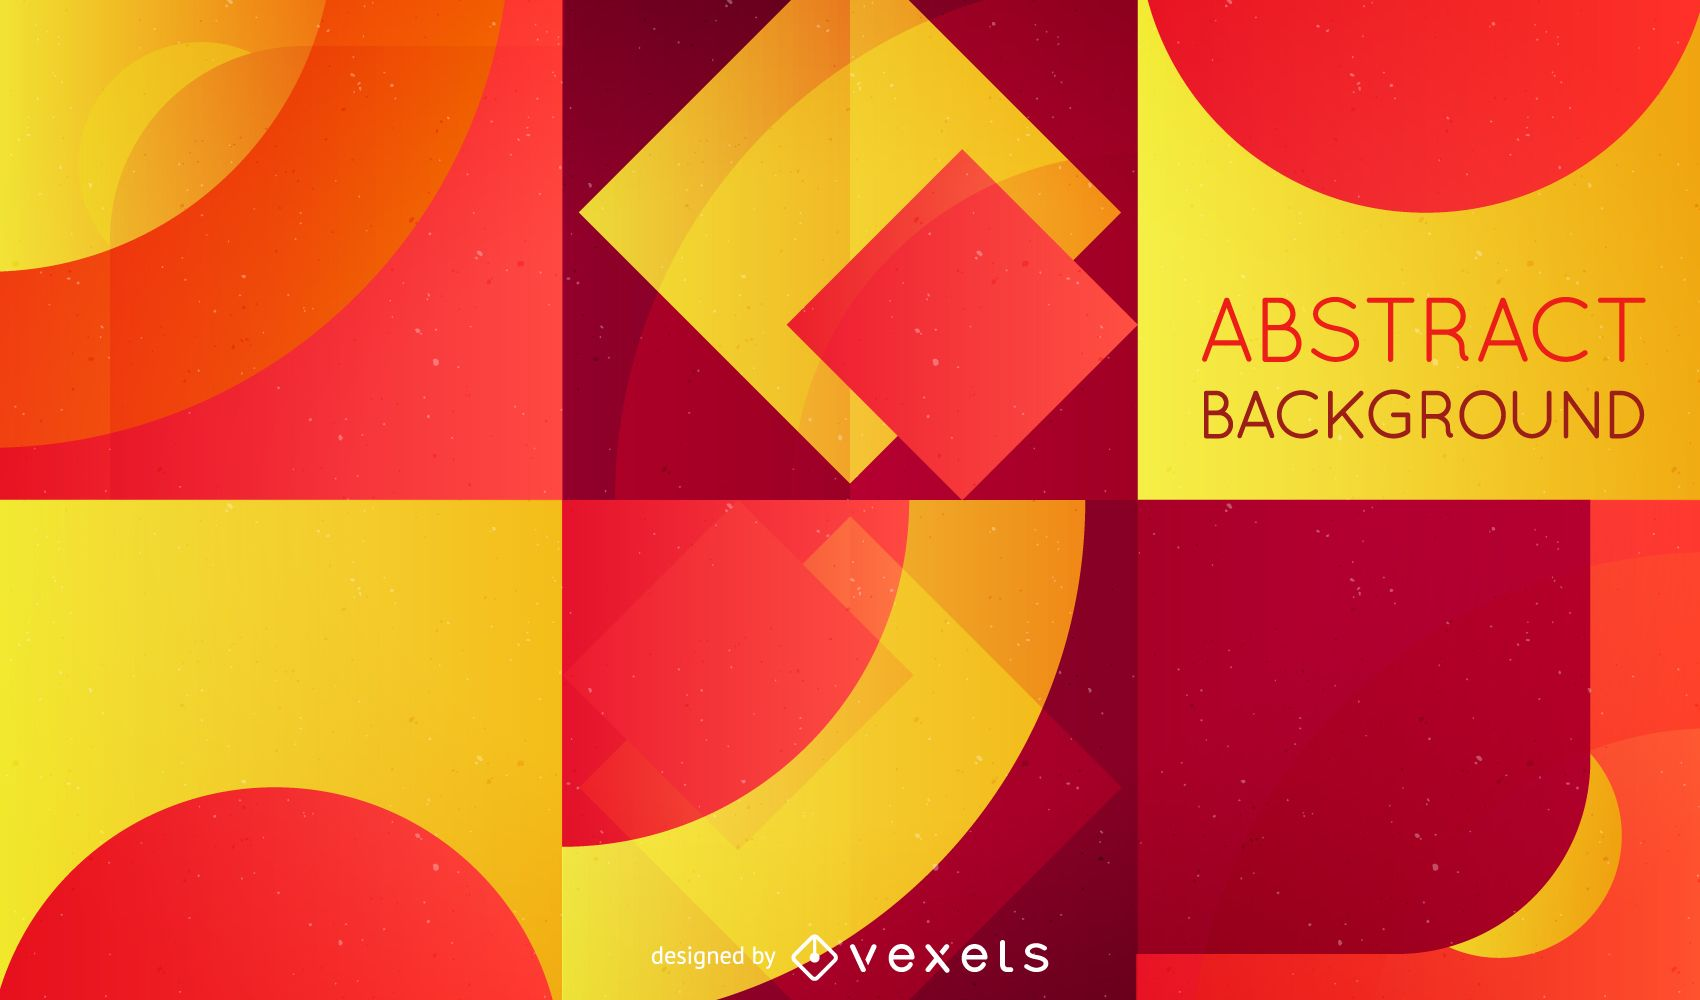 Abstract background with retro red and yellow shapes